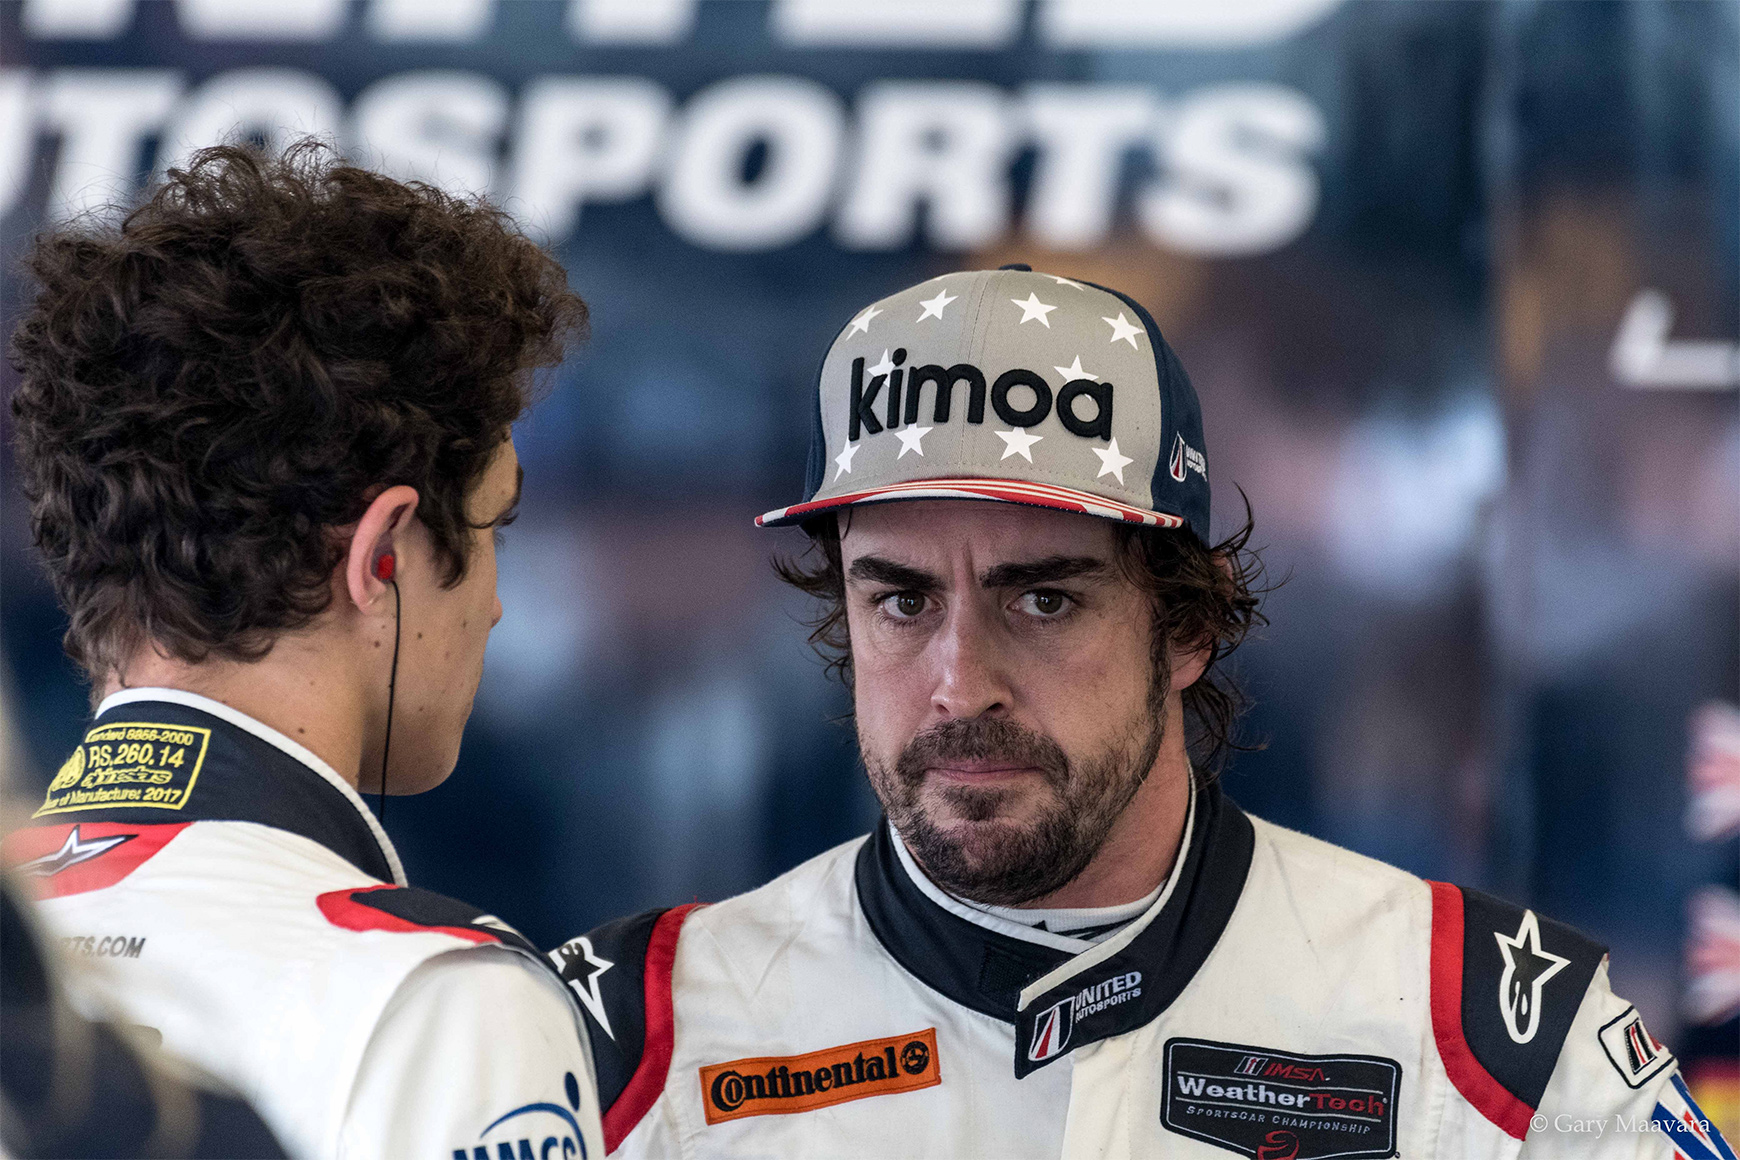 Rolex 24_race_Fernando Alonso_angry stare